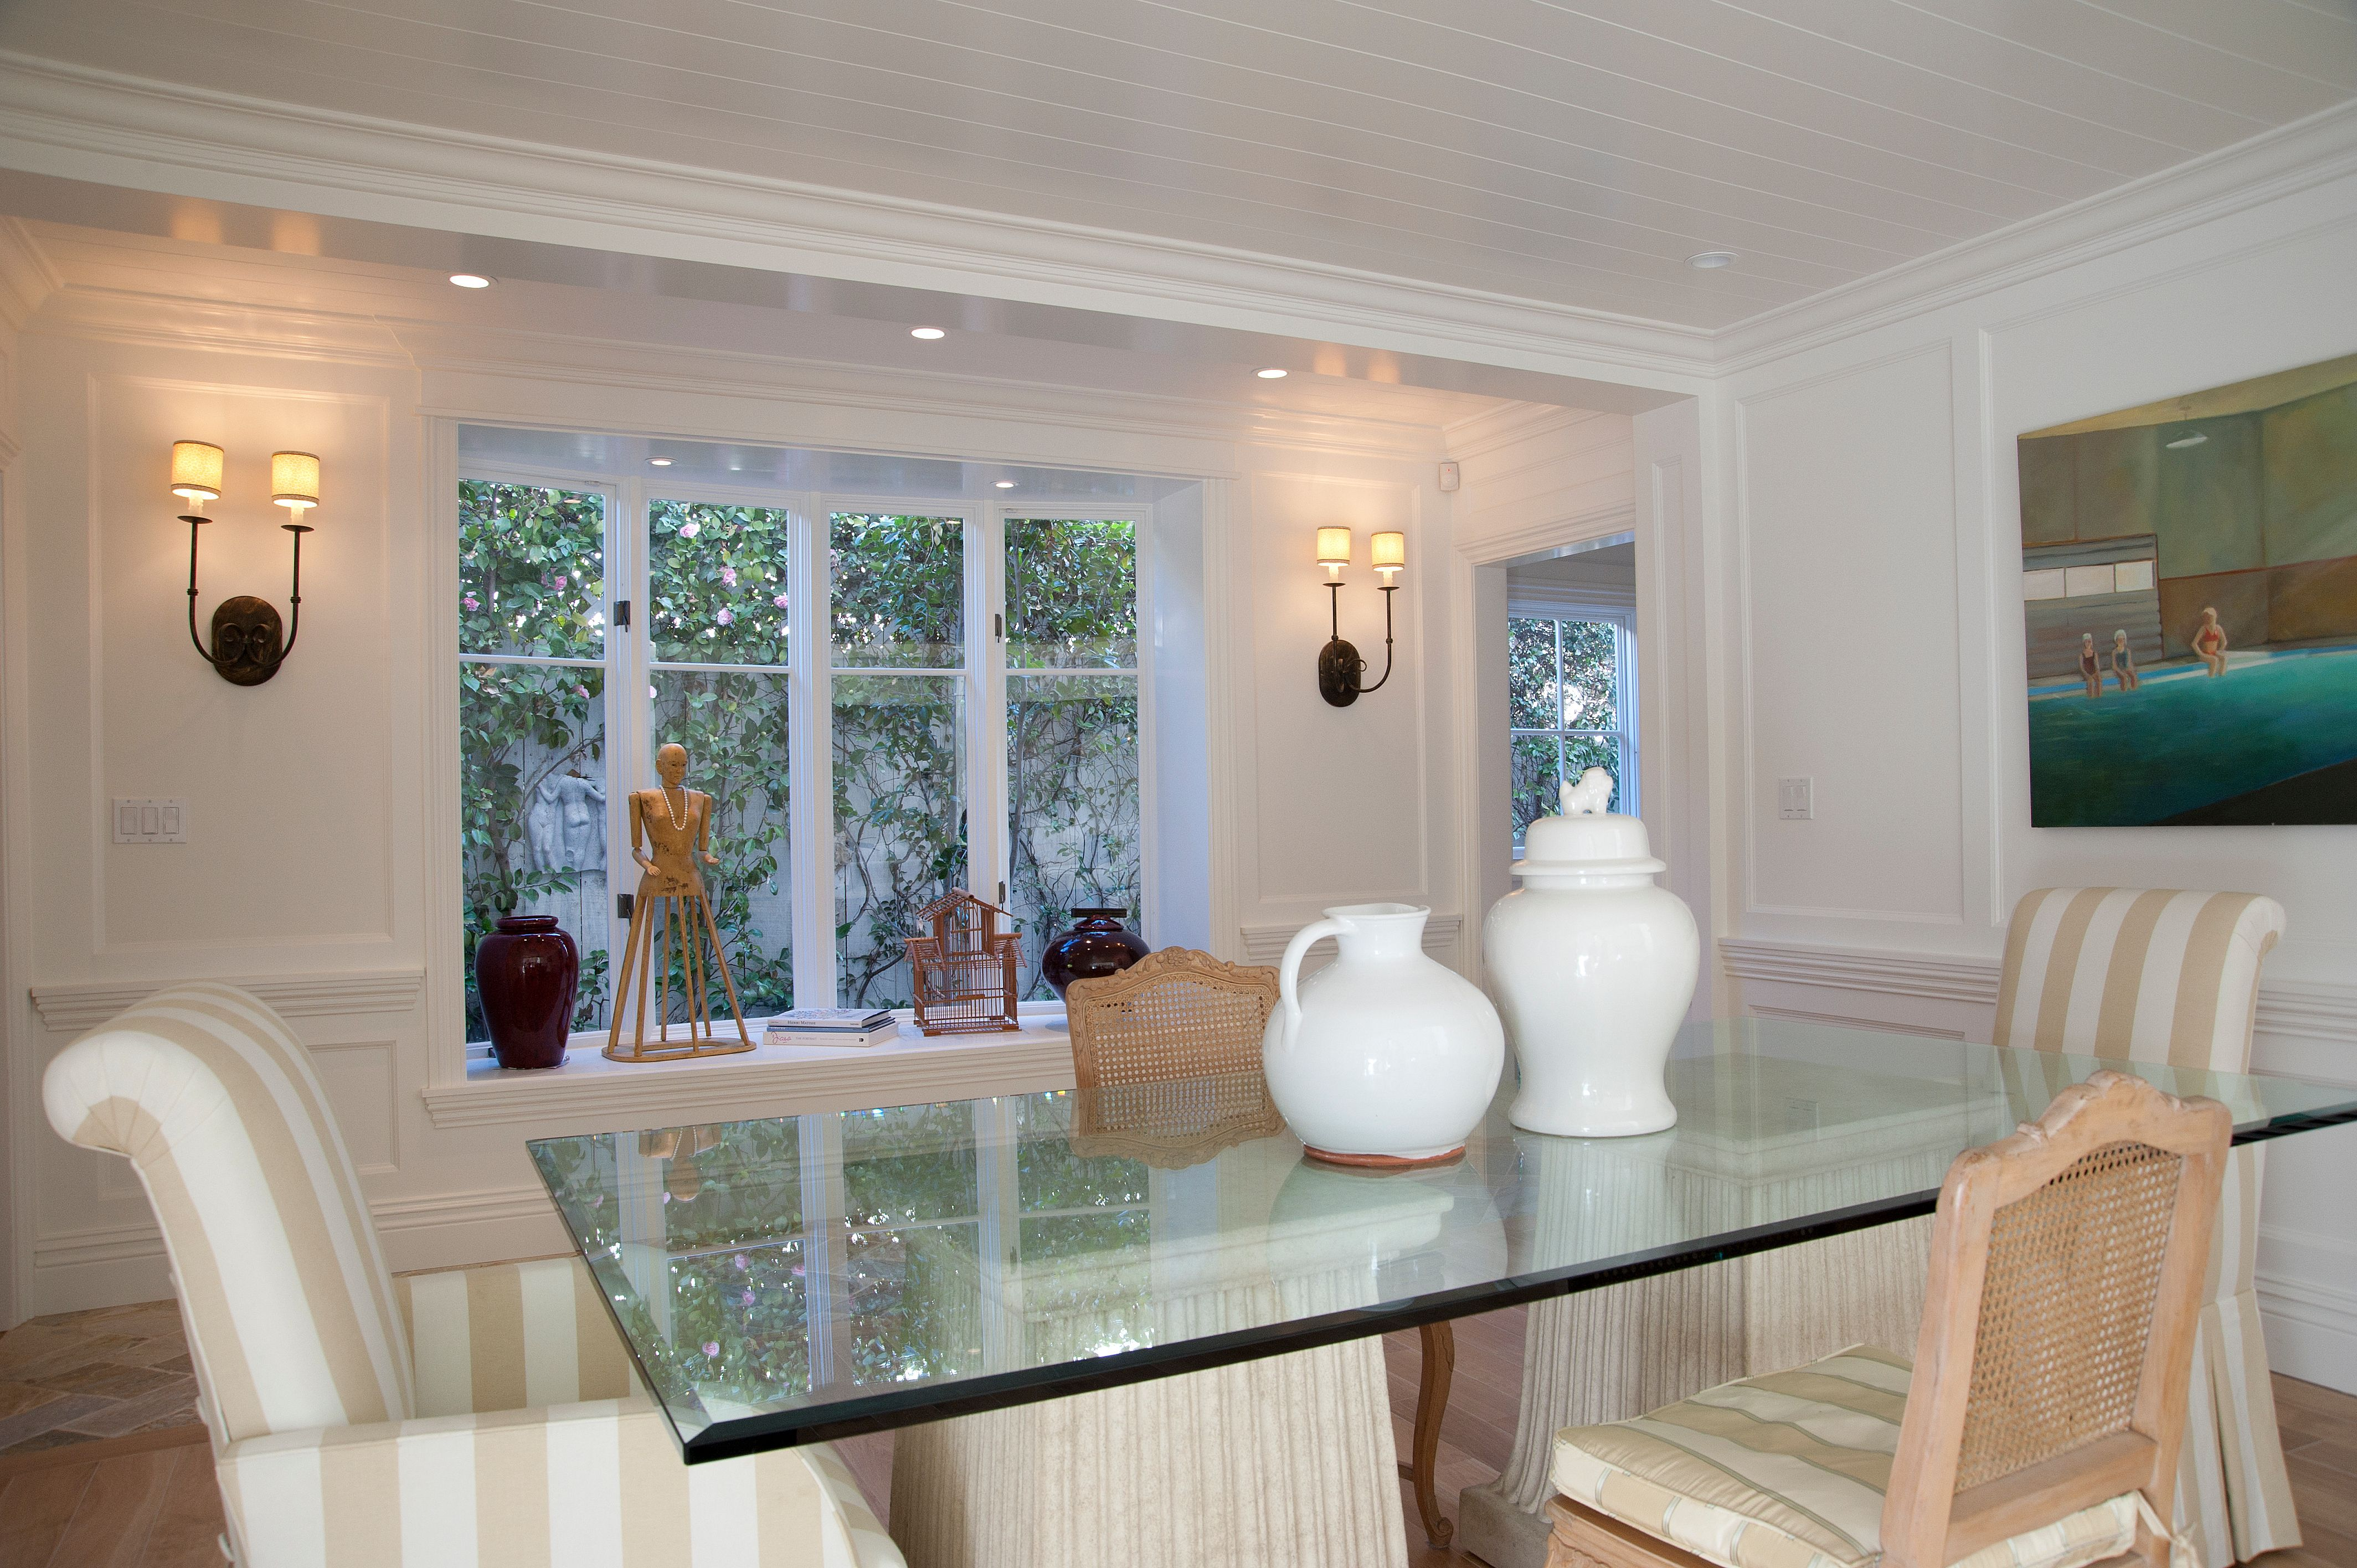 An alcove of windows in our dining room design.  Custom home, interiors, architecture, lifestyle creation by KellyBaron. http://www.kellybaron.com/home